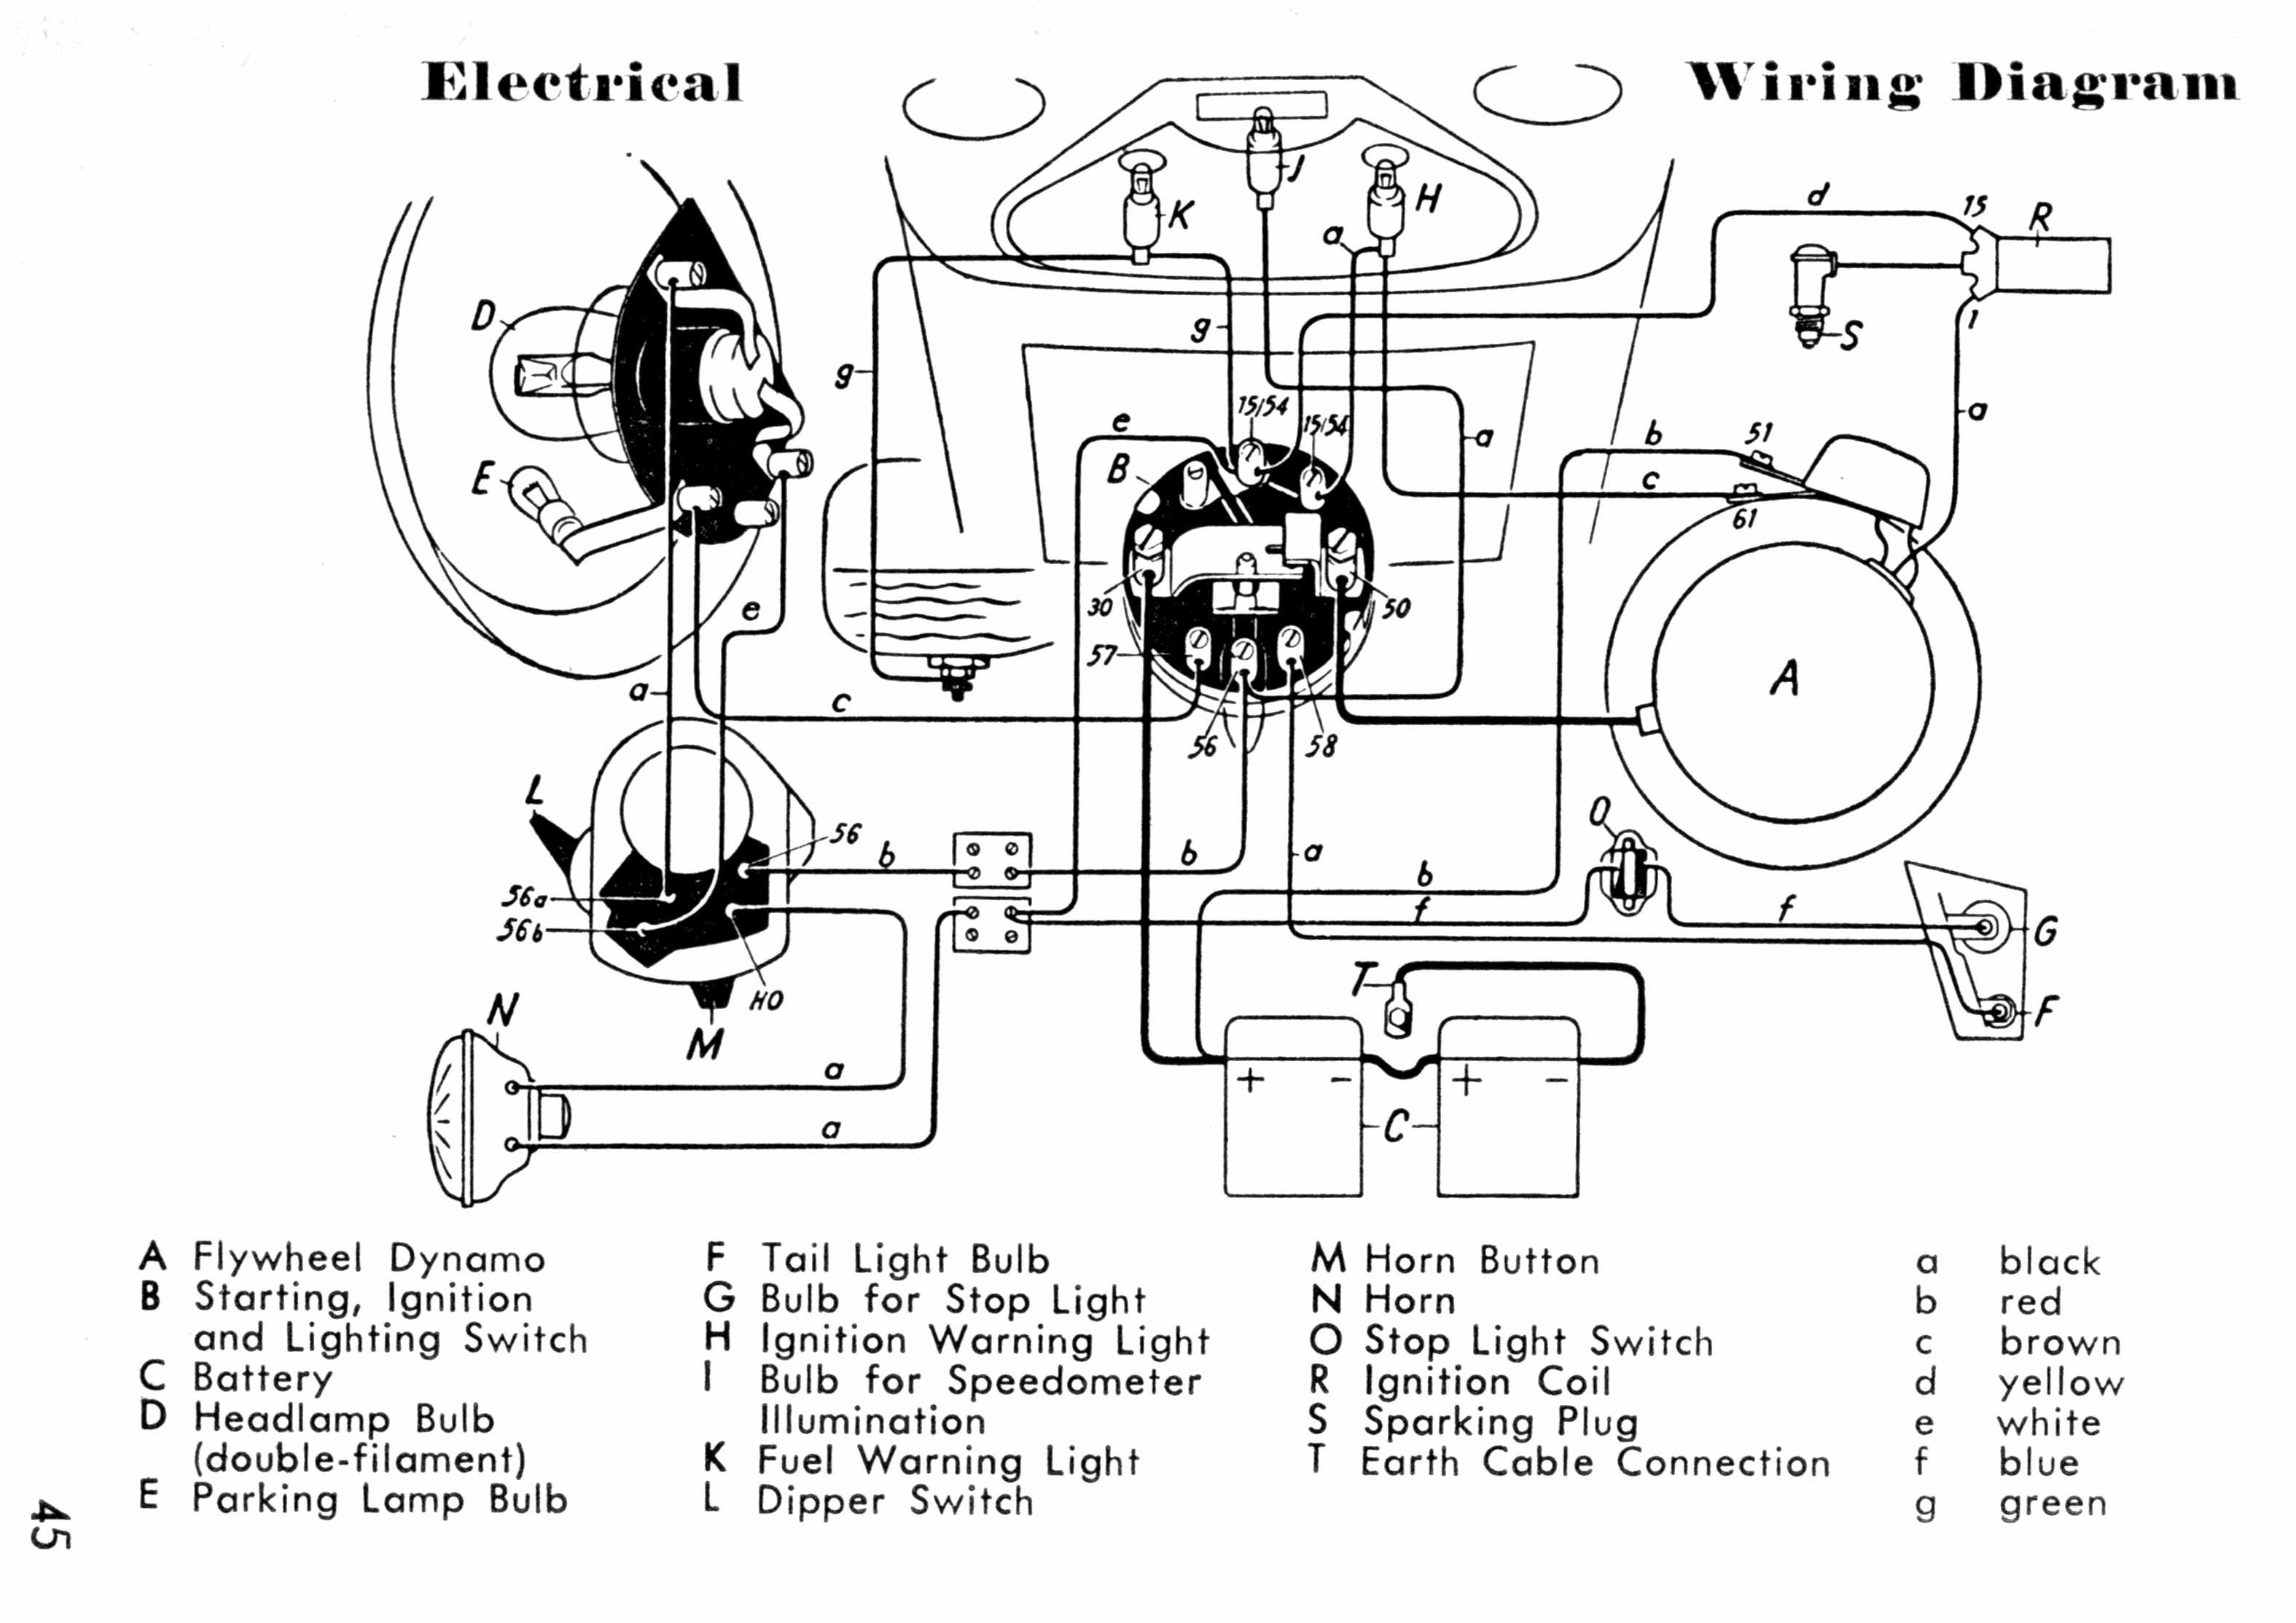 3ee73df4e7463c417fc349eccfcaade4 schematic electric scooter wiring diagram closet pinterest scooter electrical diagram at edmiracle.co